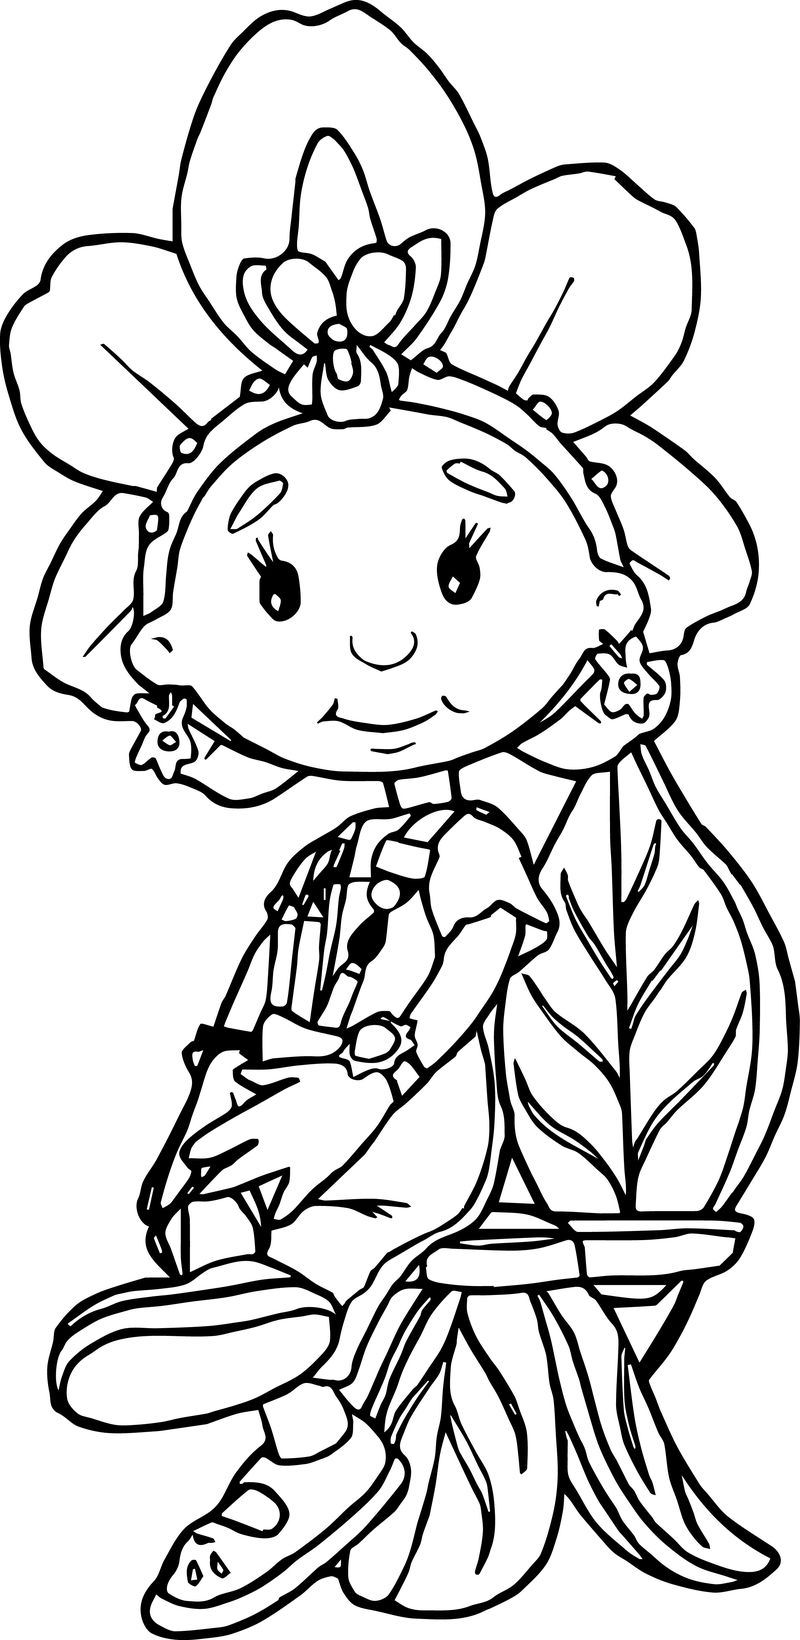 Fifi and the flowertots staying coloring page